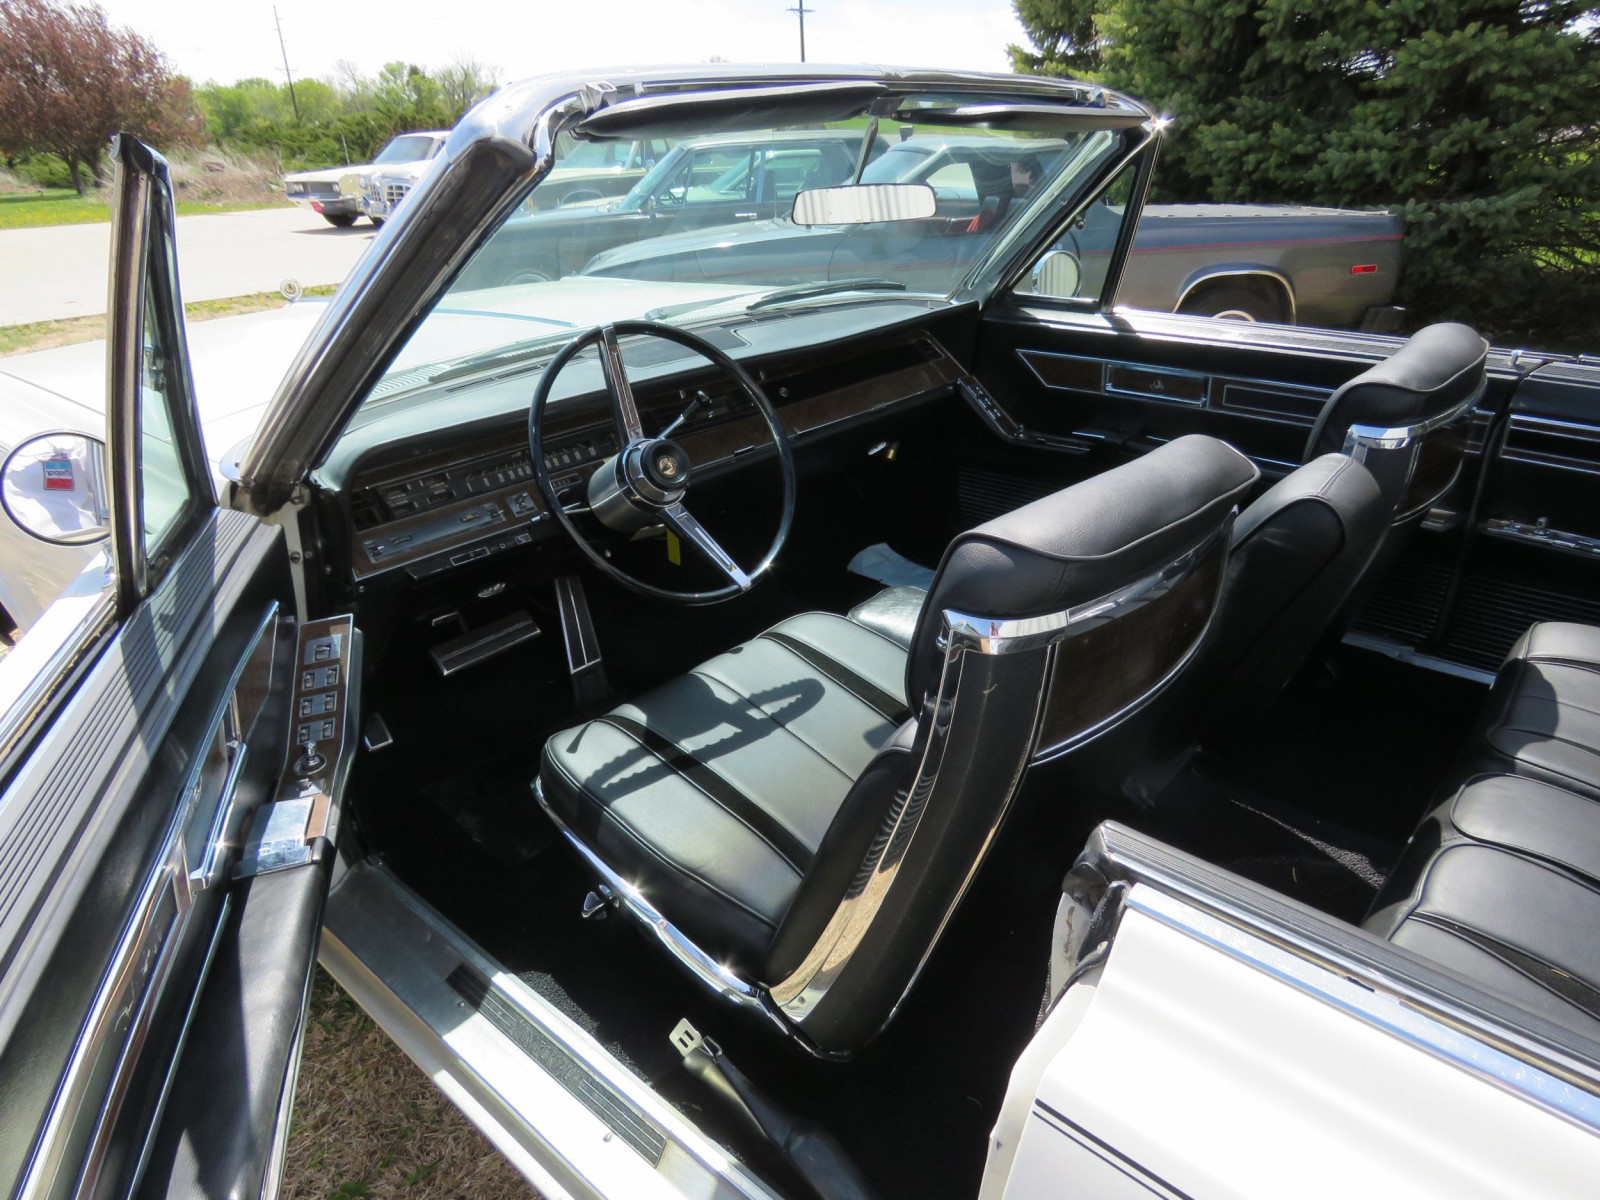 1967 Chrysler Imperial Convertible - Image 12